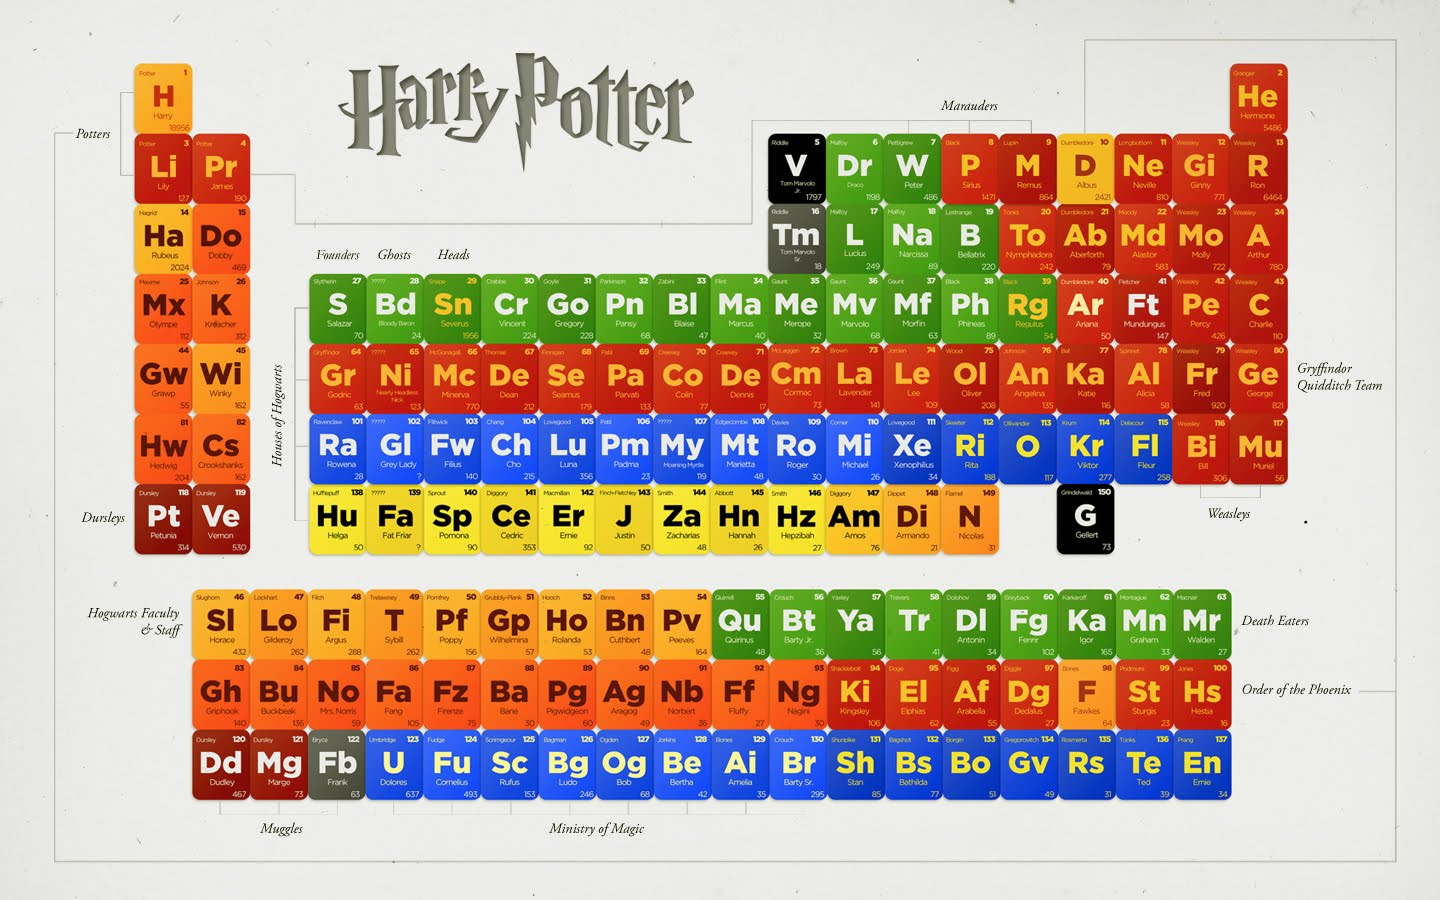 14 tablas peridicas muy curiosas the science watcher la tabla peridica de harry potter urtaz Images